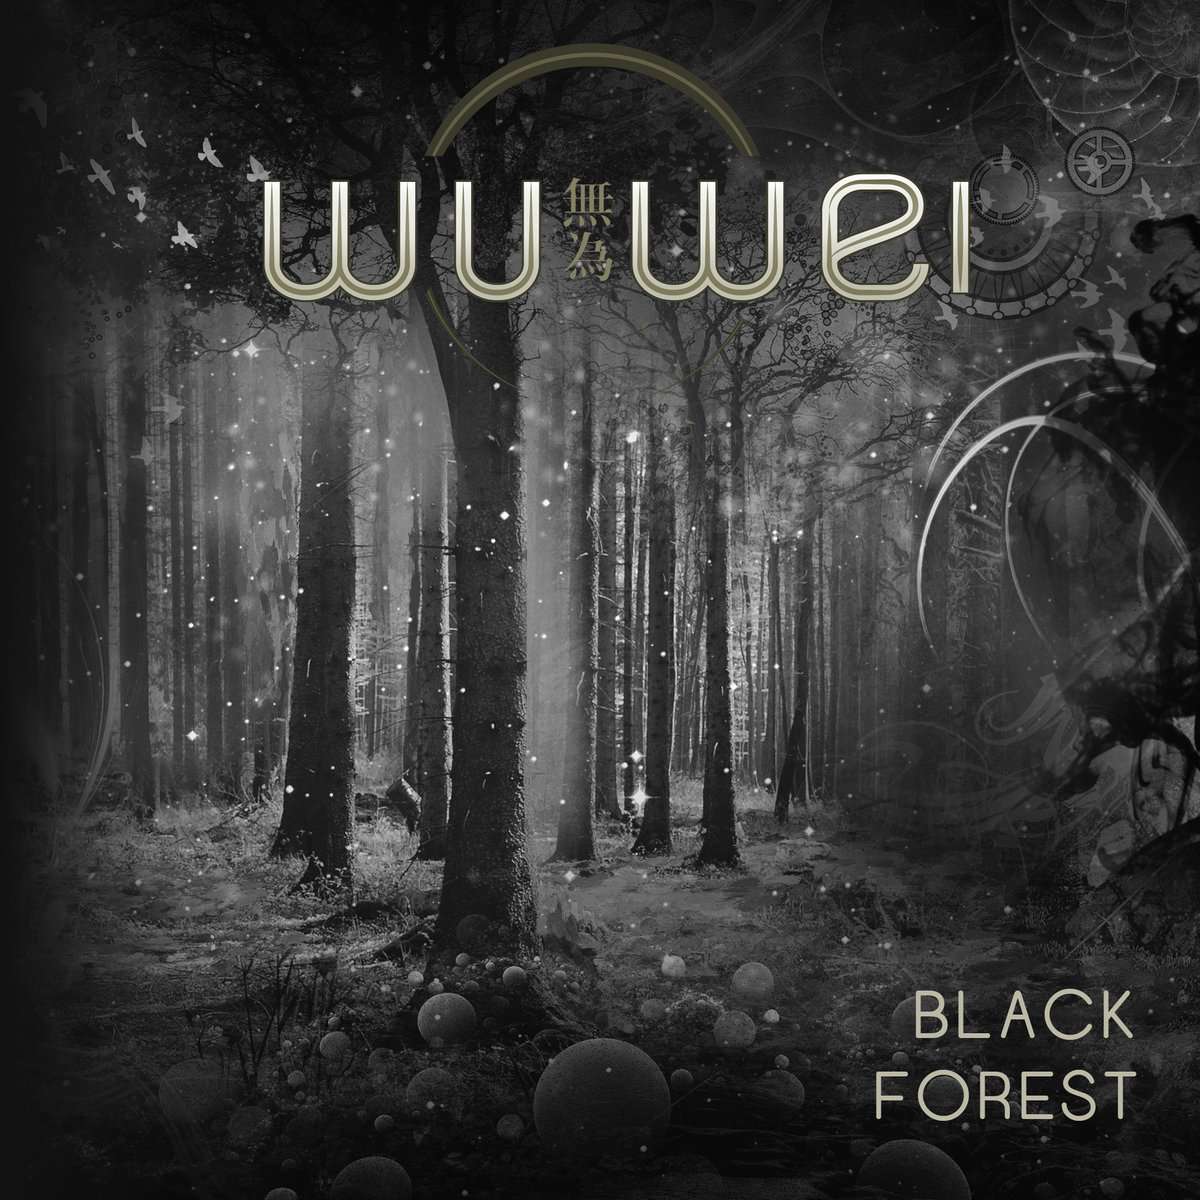 Wu Wei - The Black Forest @ 'Black Forest' album (electronic, future bass)